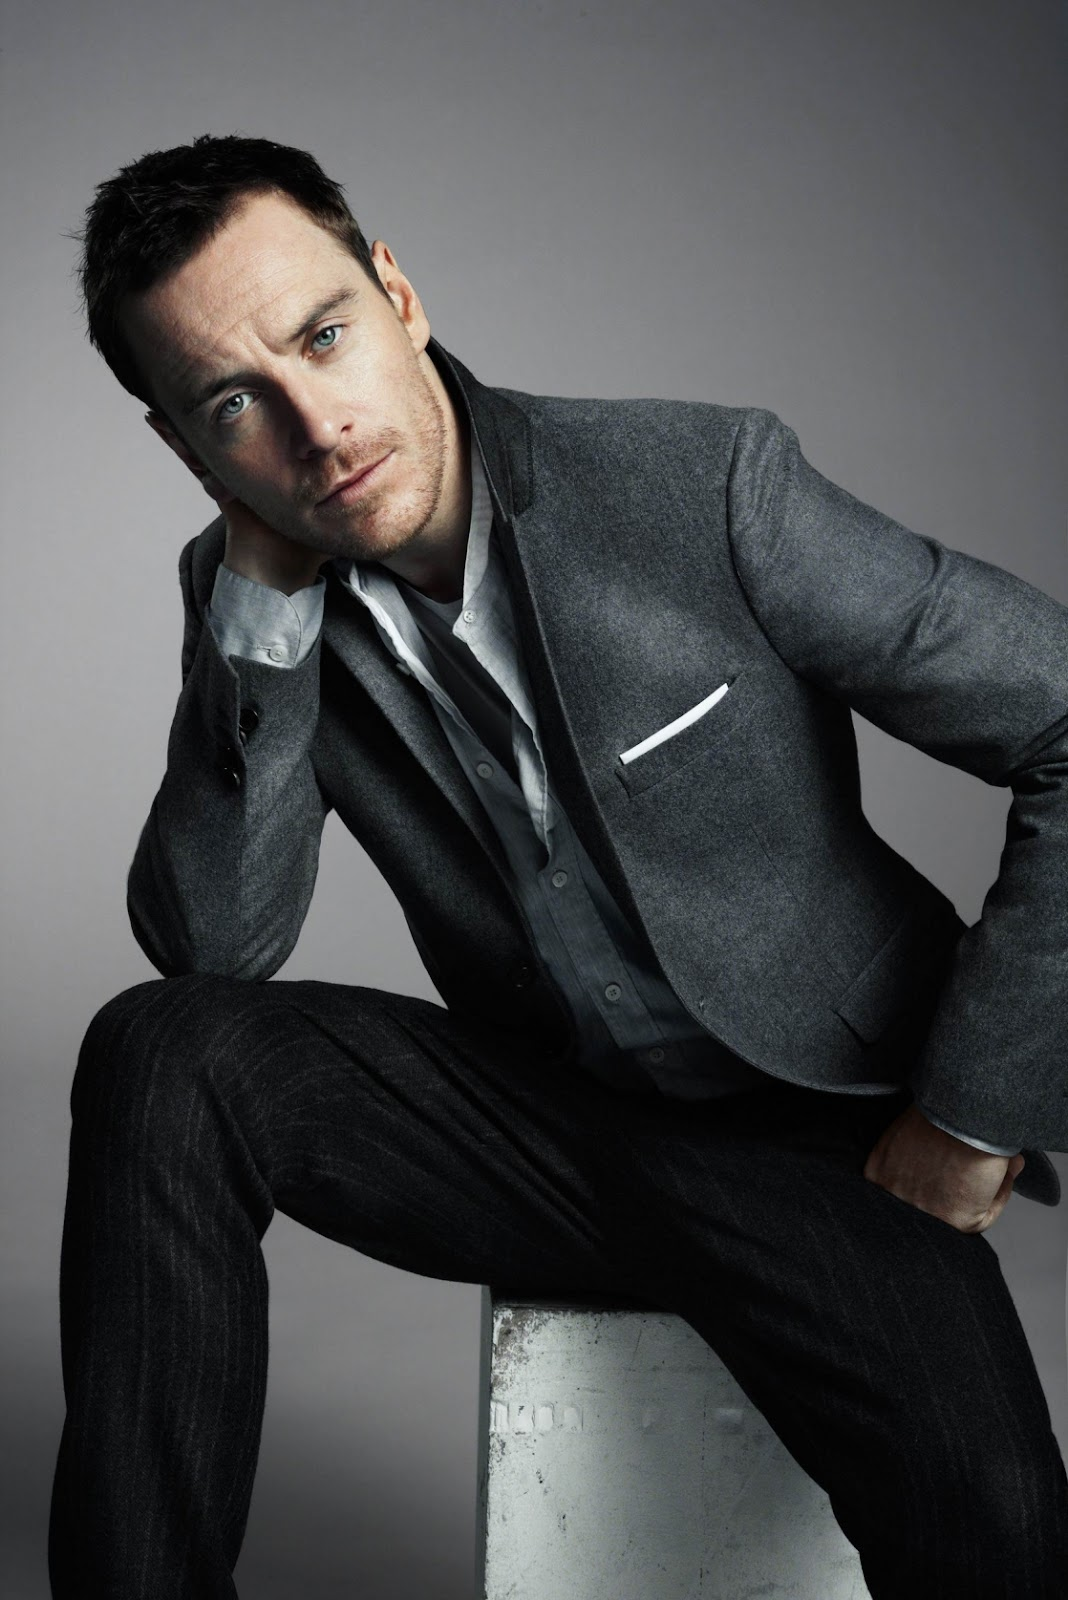 MOST BEAUTIFUL MEN: MICHAEL FASSBENDER Michael Fassbender